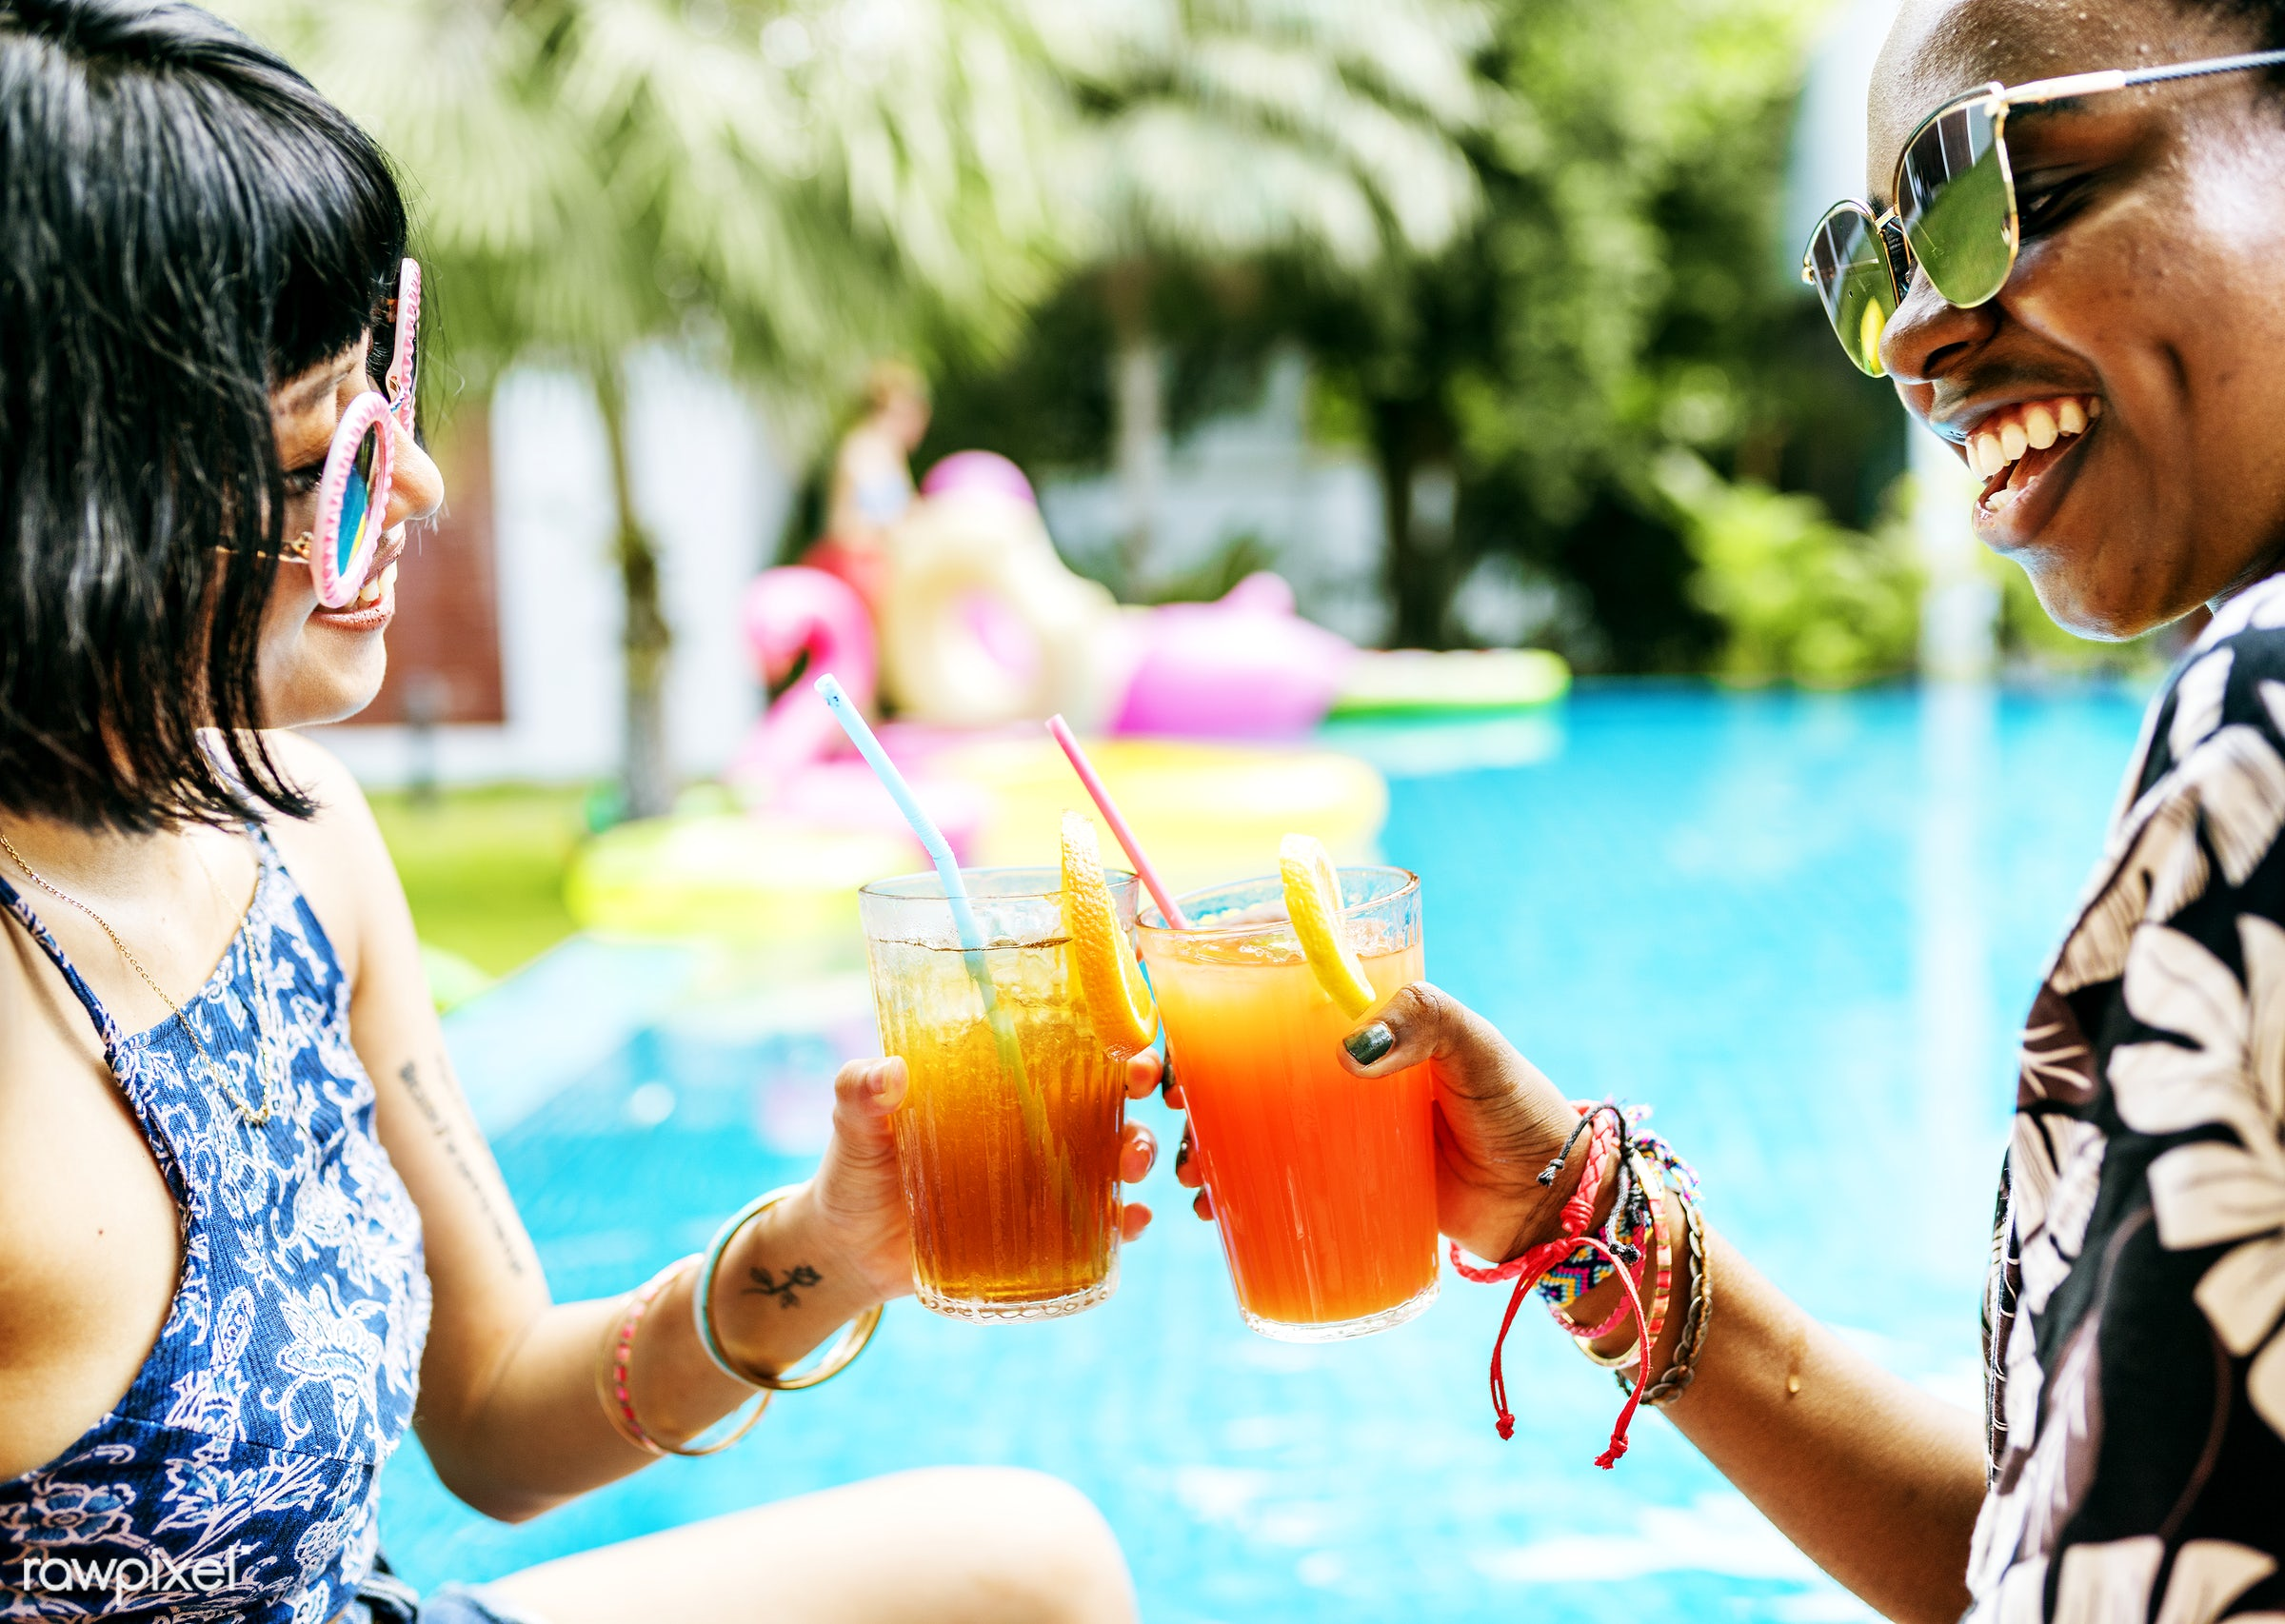 Hands toasting juice glasses by the pool summer time - fun, activity, beverage, celebration, cheerful, cheers, clink,...